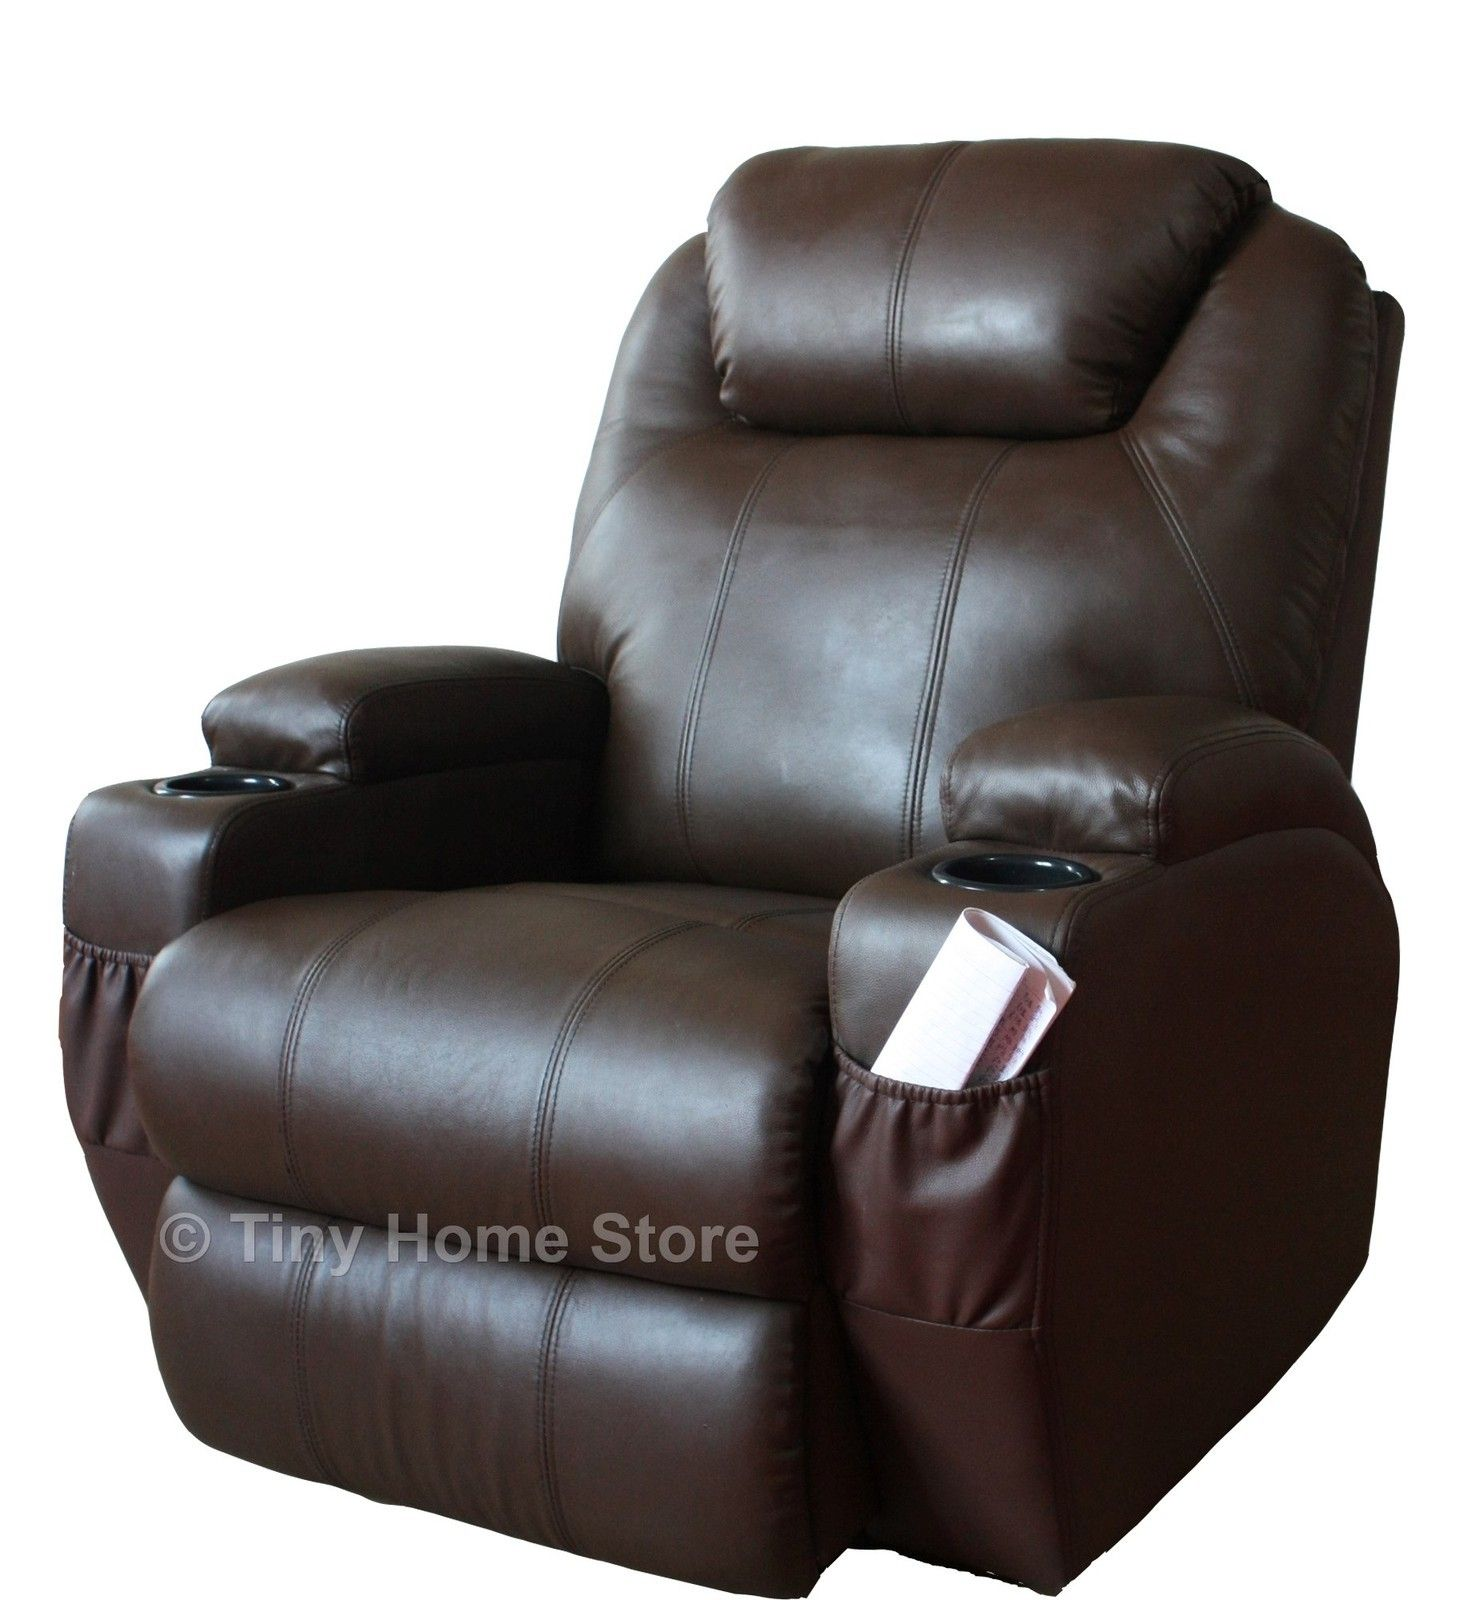 ... electric leather recliners with cup holders luxury leather electric rise and recline mobility lift chair ...  sc 1 th 235 & Luxury Leather Recliners High End Recliners Foter. Ultra Modern ... islam-shia.org